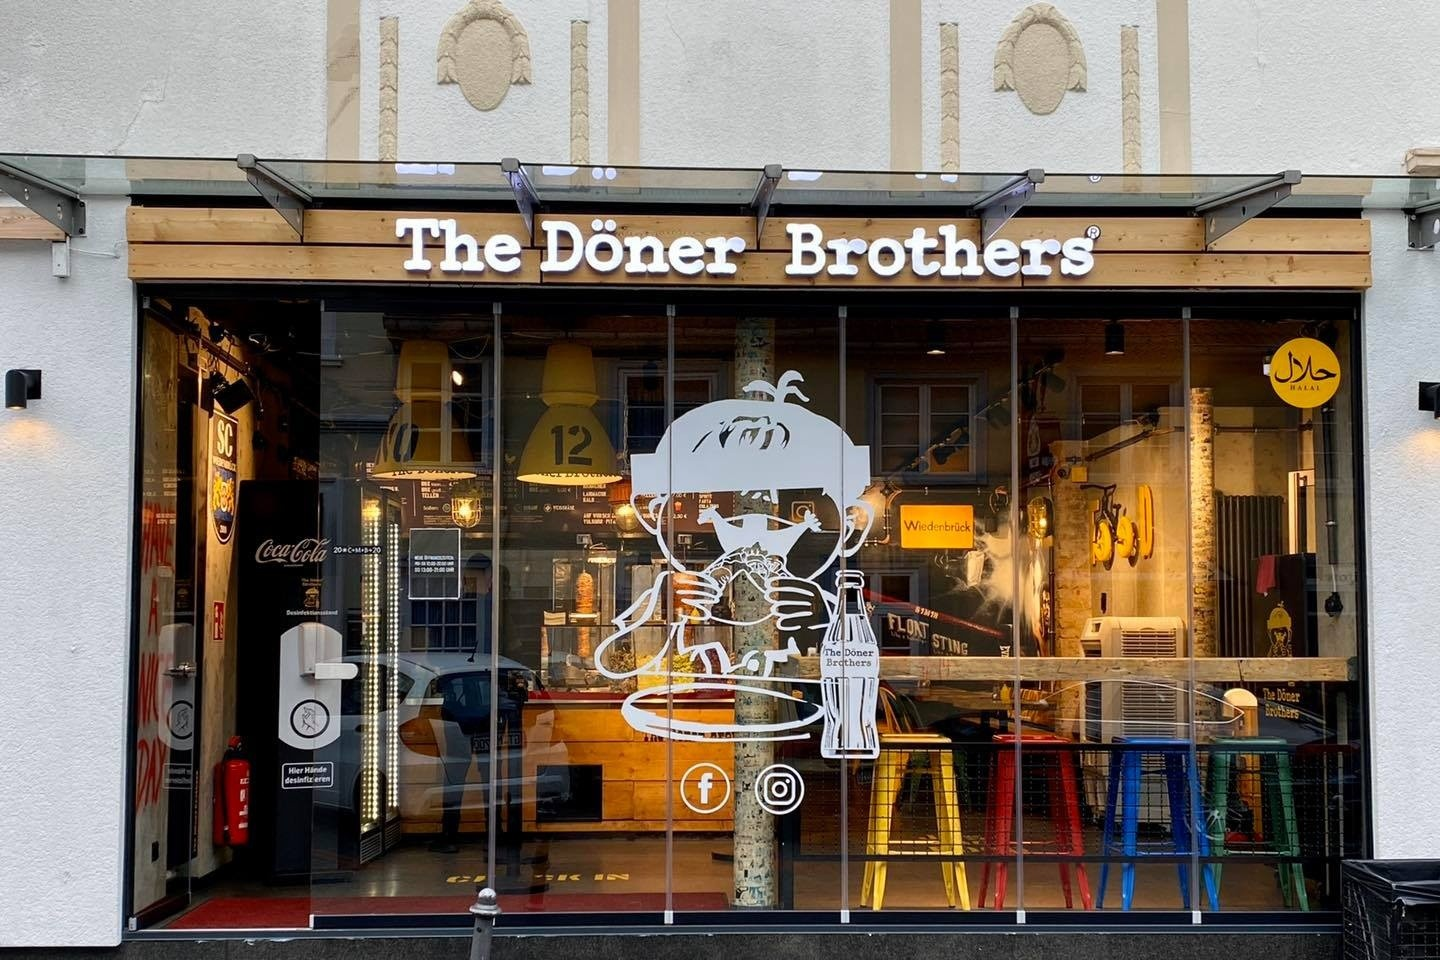 The Döner Brothers